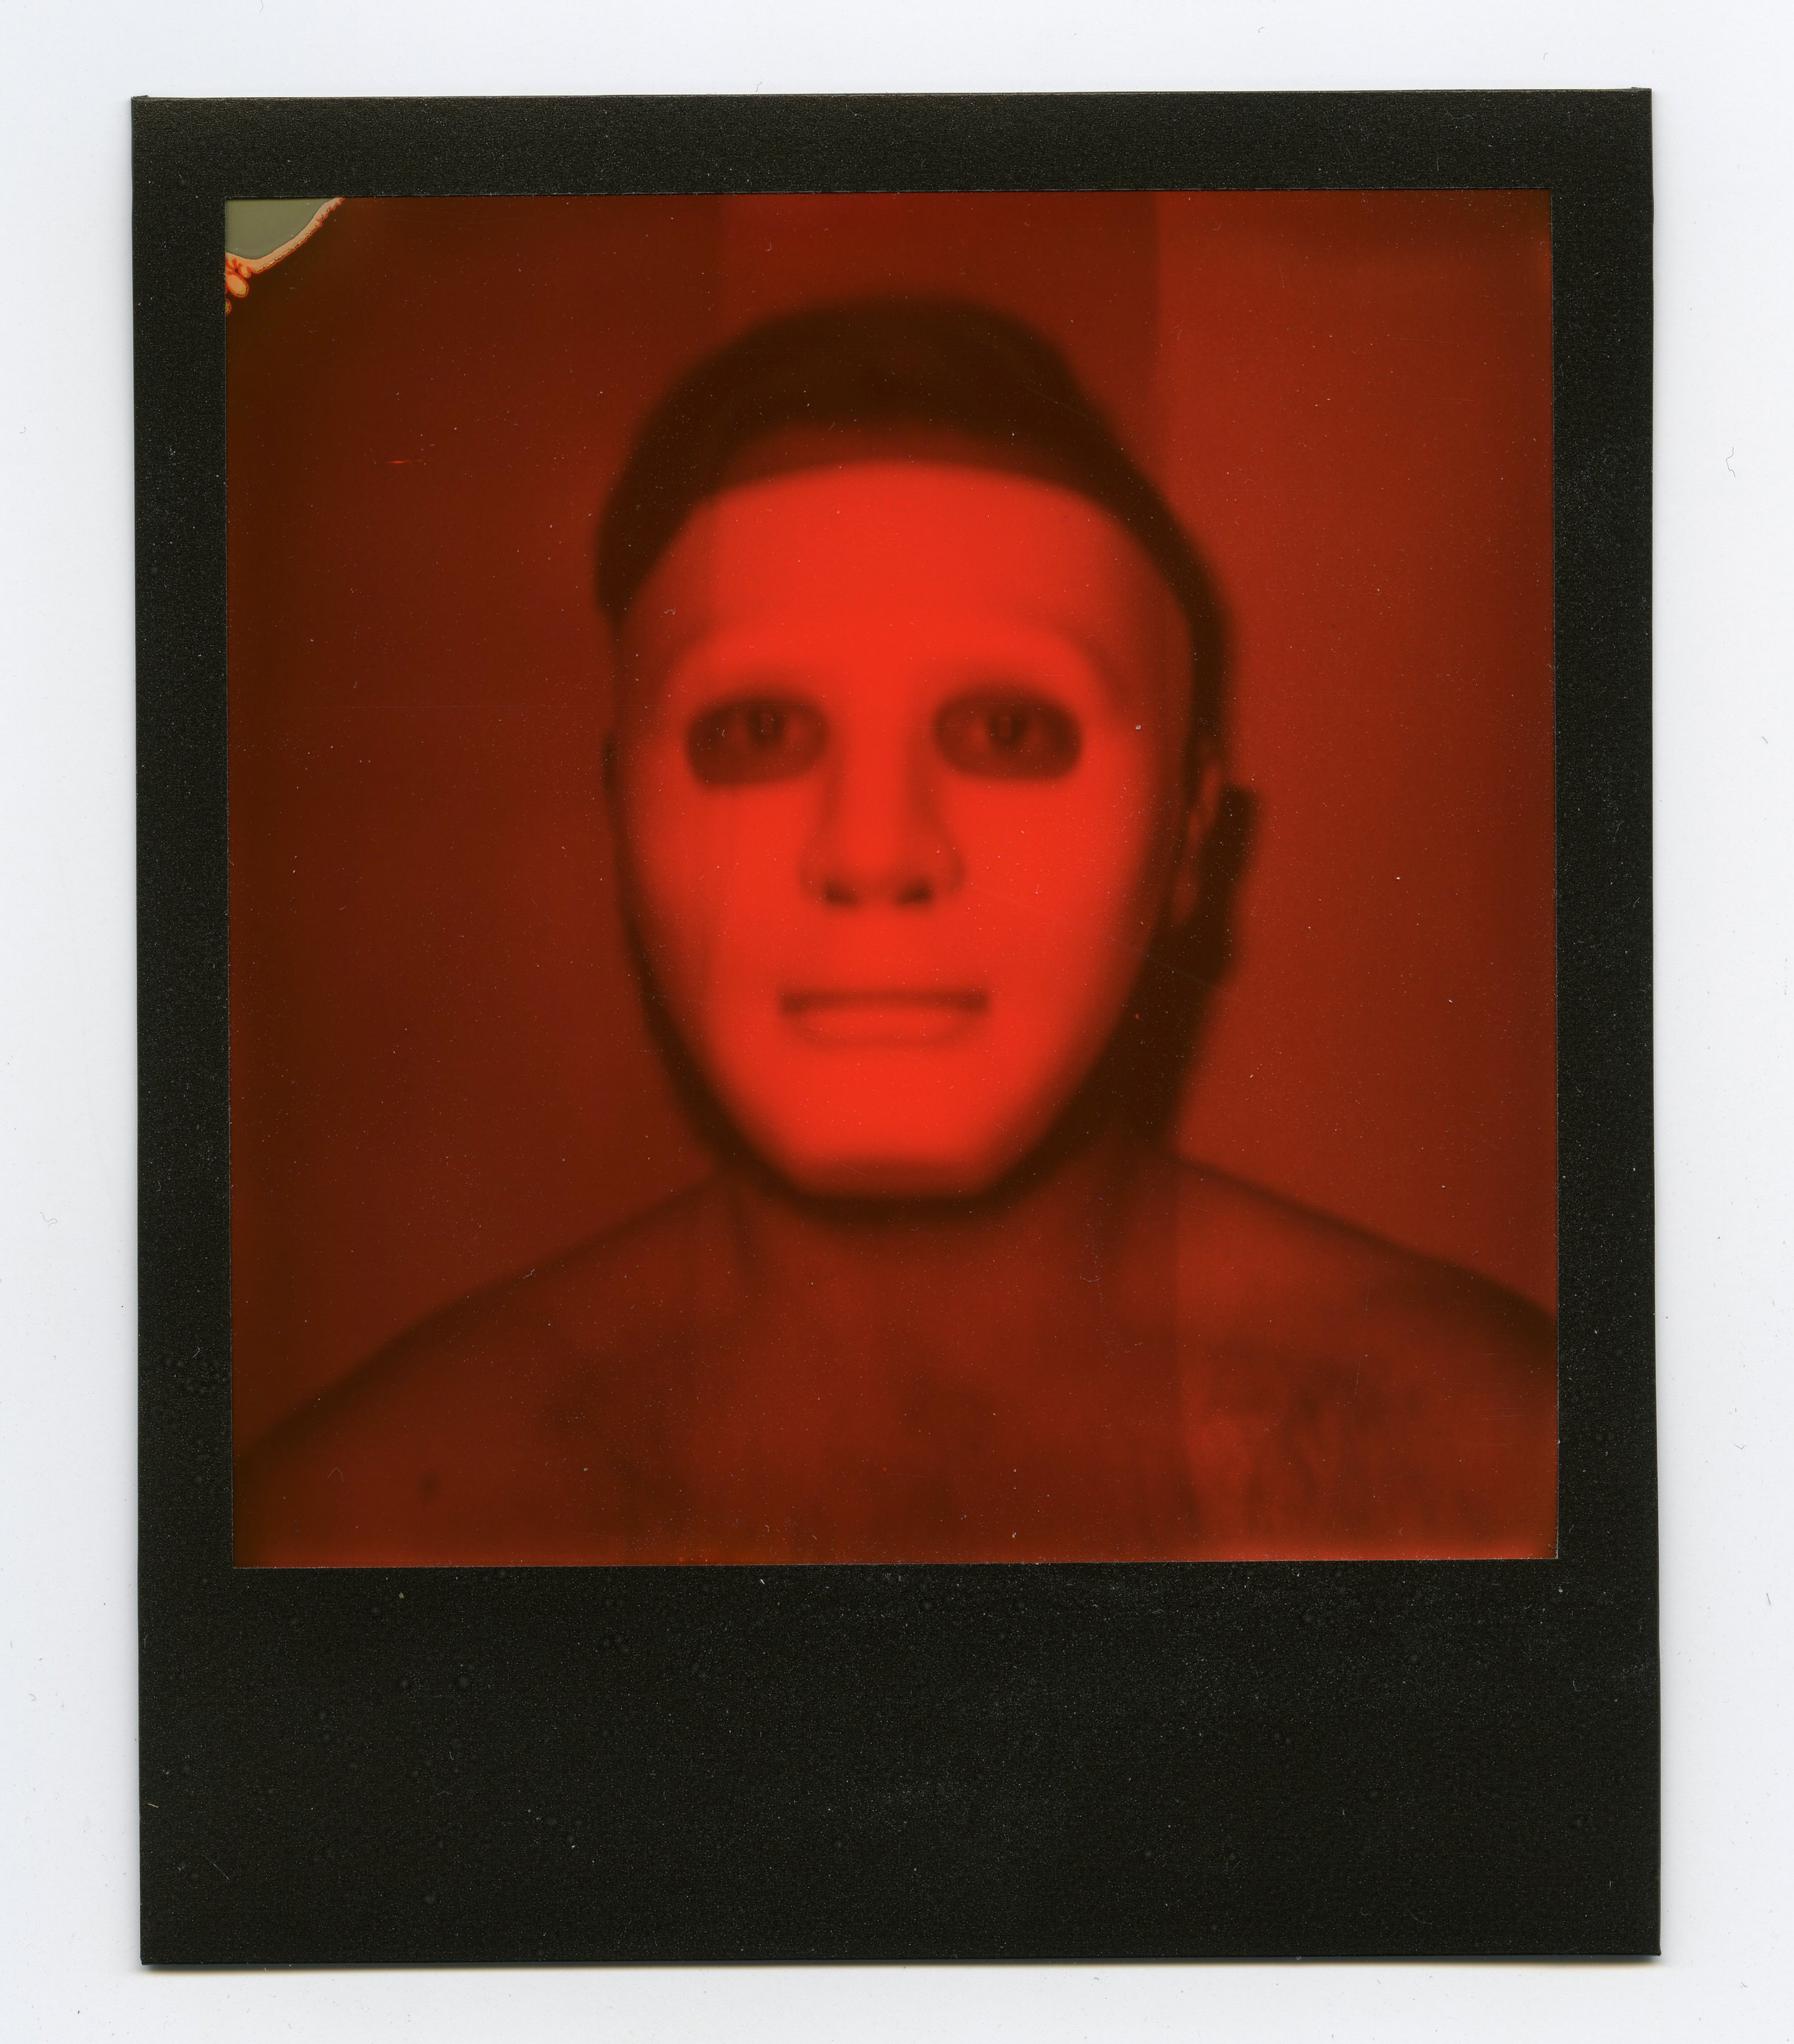 Seeing Red - Shot with Impossible Black And Orange Duochrome Instant Film - Speedway, IN